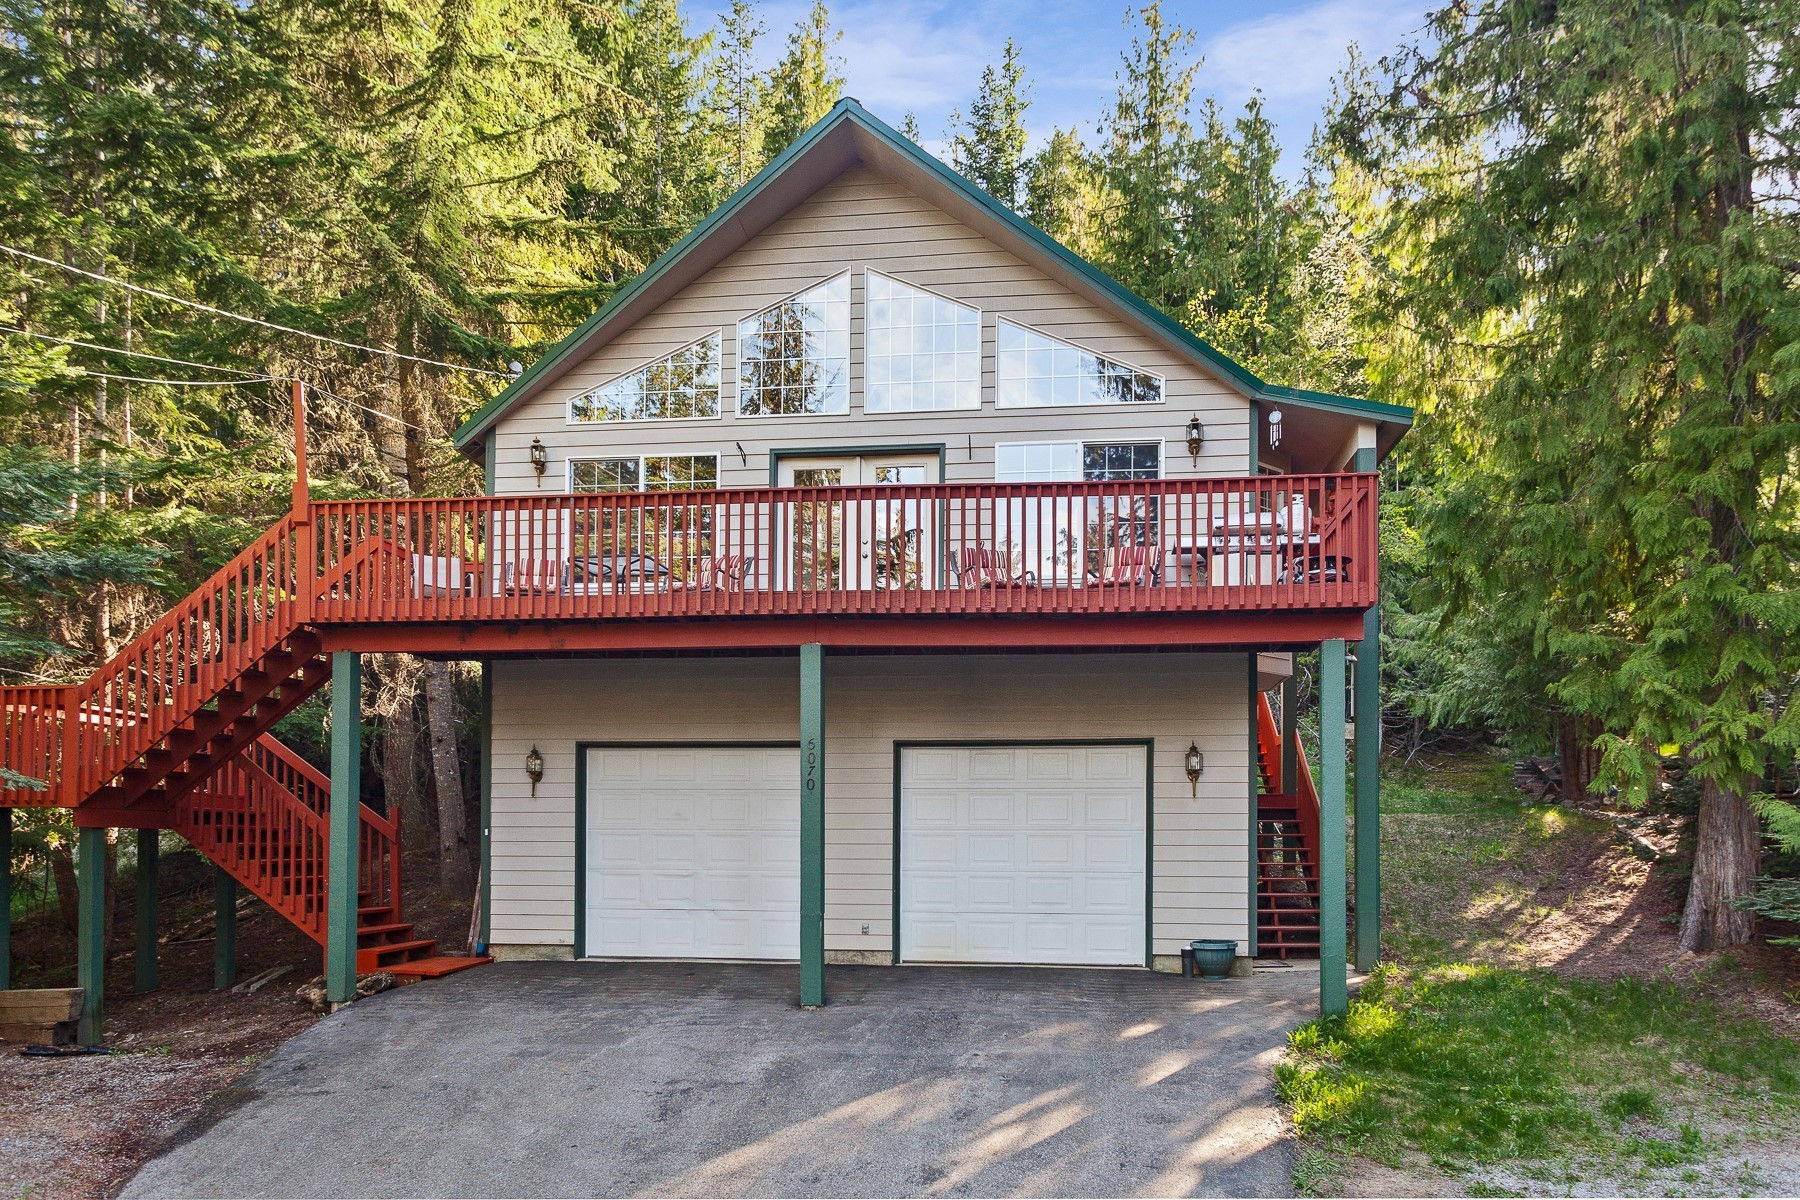 Single Family Homes for Sale at Welcome To Your Cabin In the Woods! 6070 E. Hayden Lake Road Hayden, Idaho 83835 United States